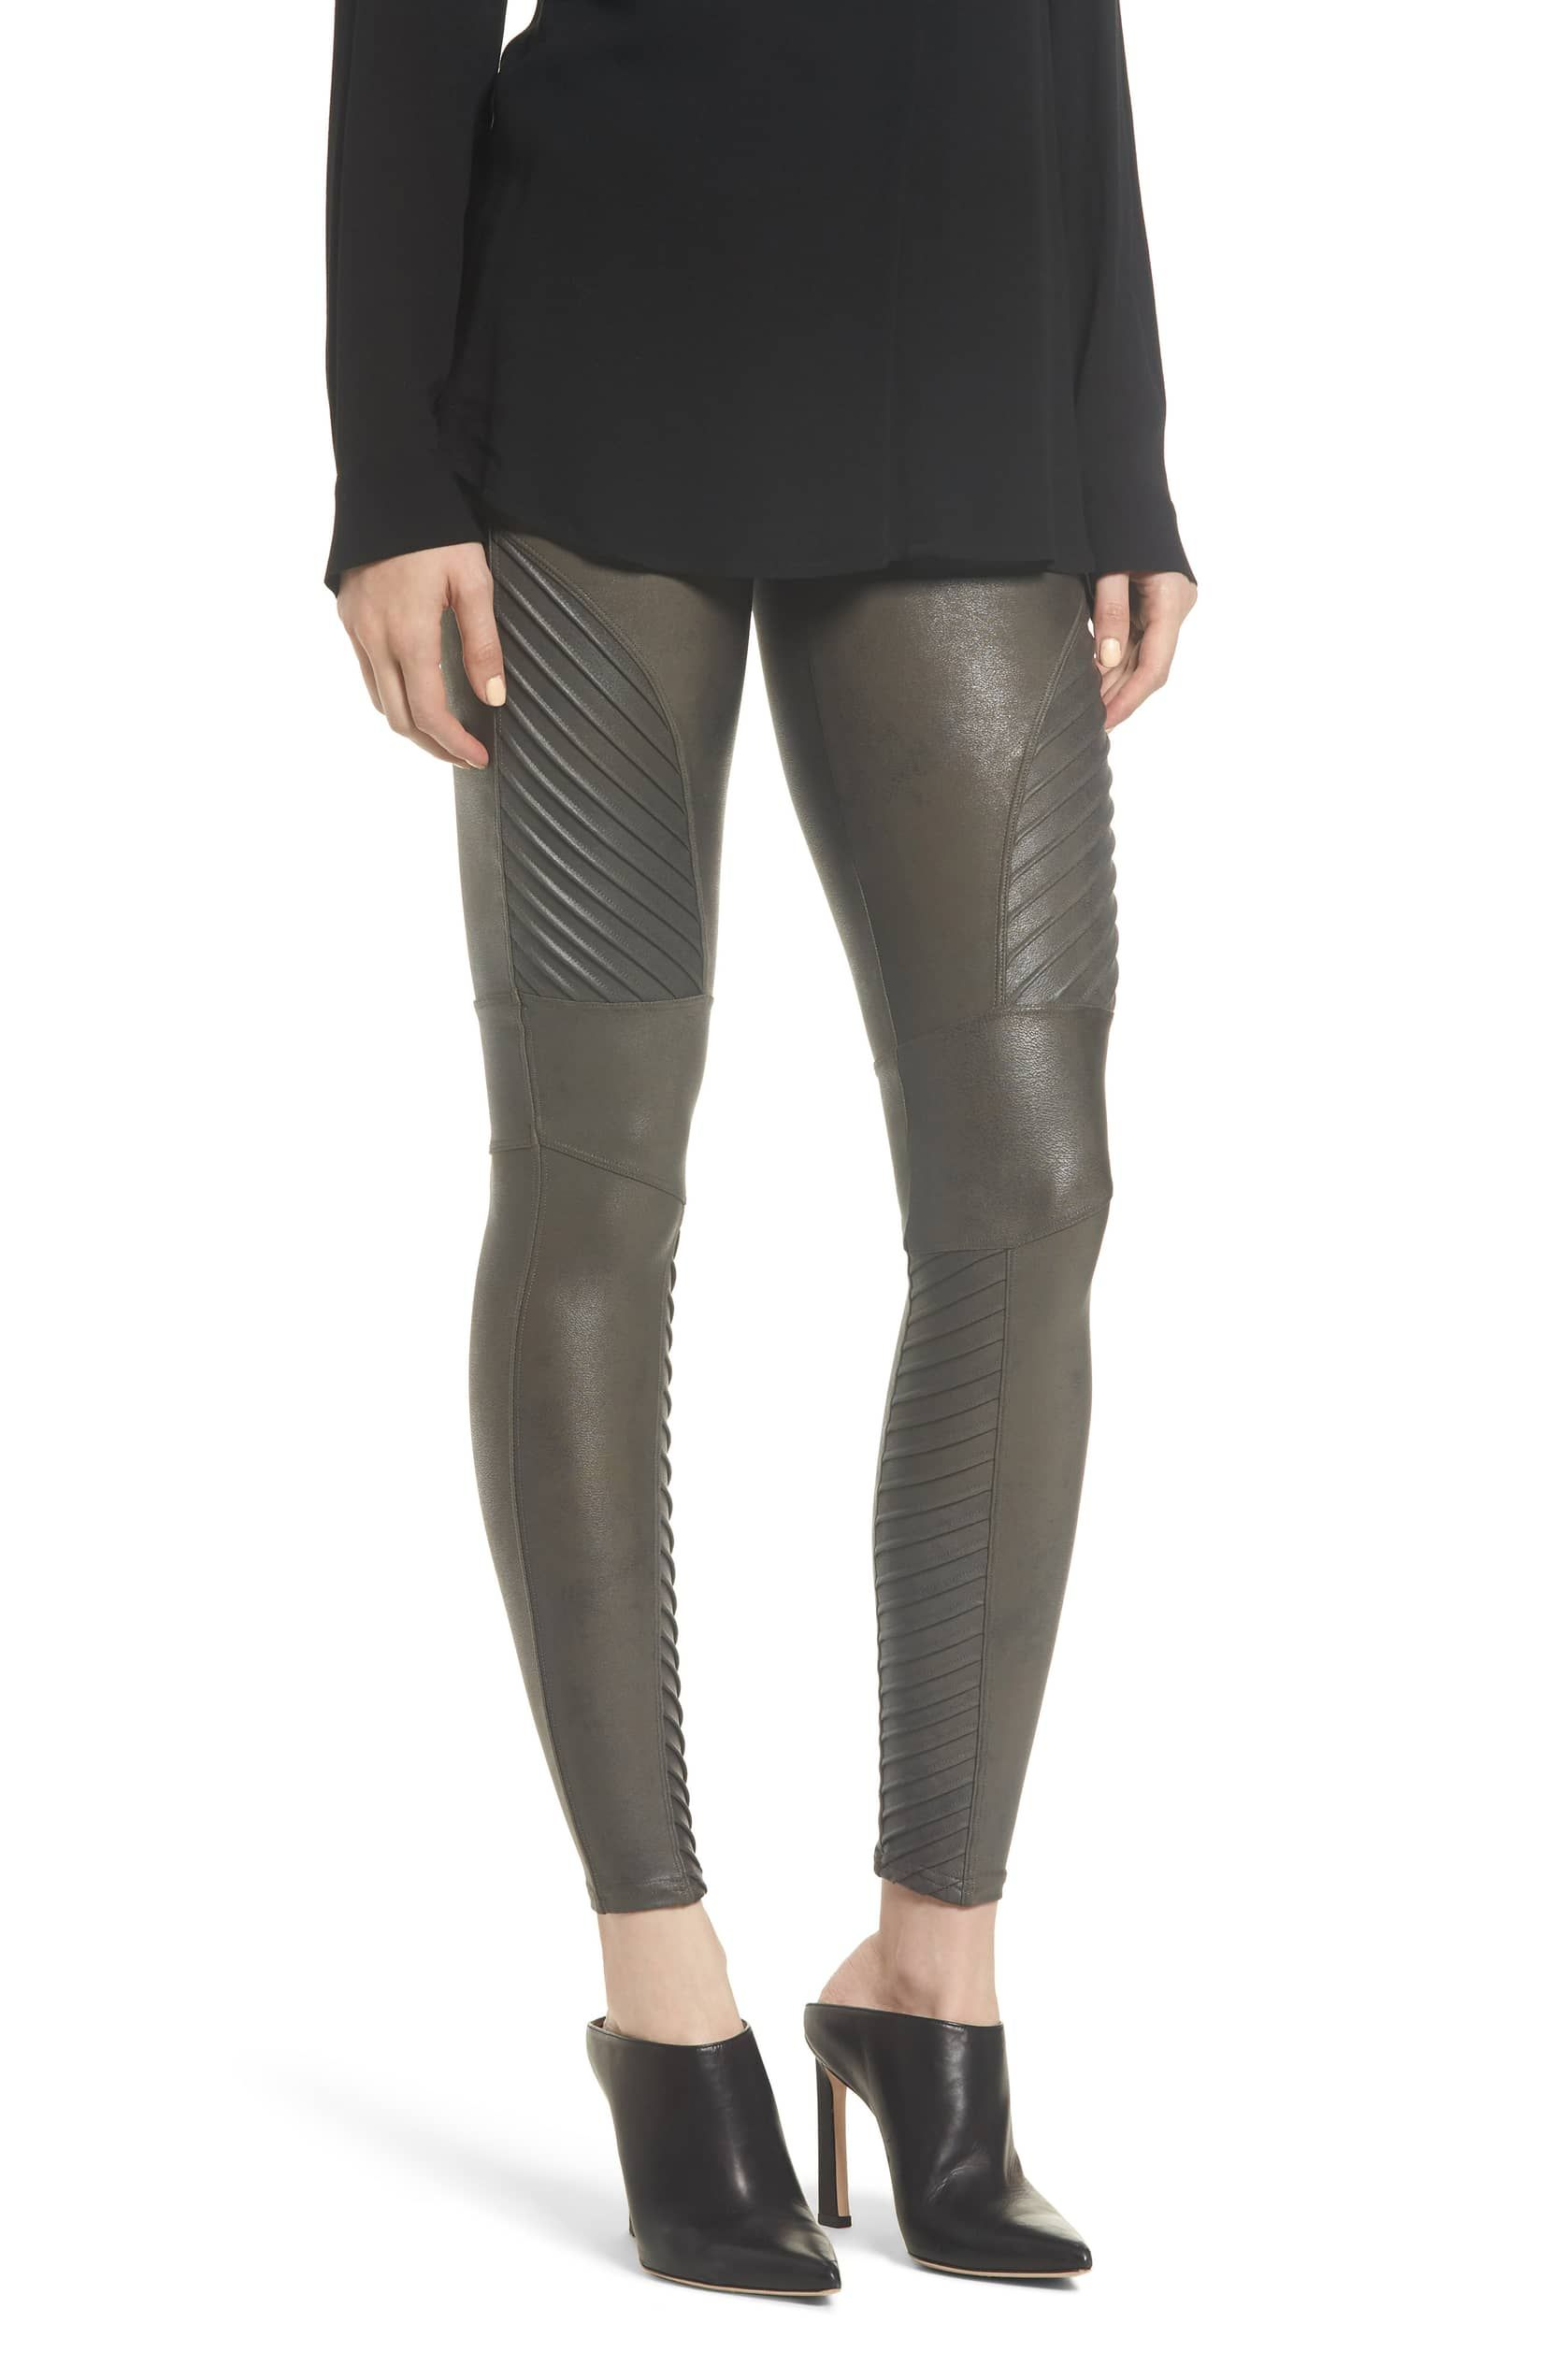 a71de680277f5d $110 Nordstrom While Motto Leggings, Spanx Faux Leather Leggings, Leather  Pants, Athleisure,